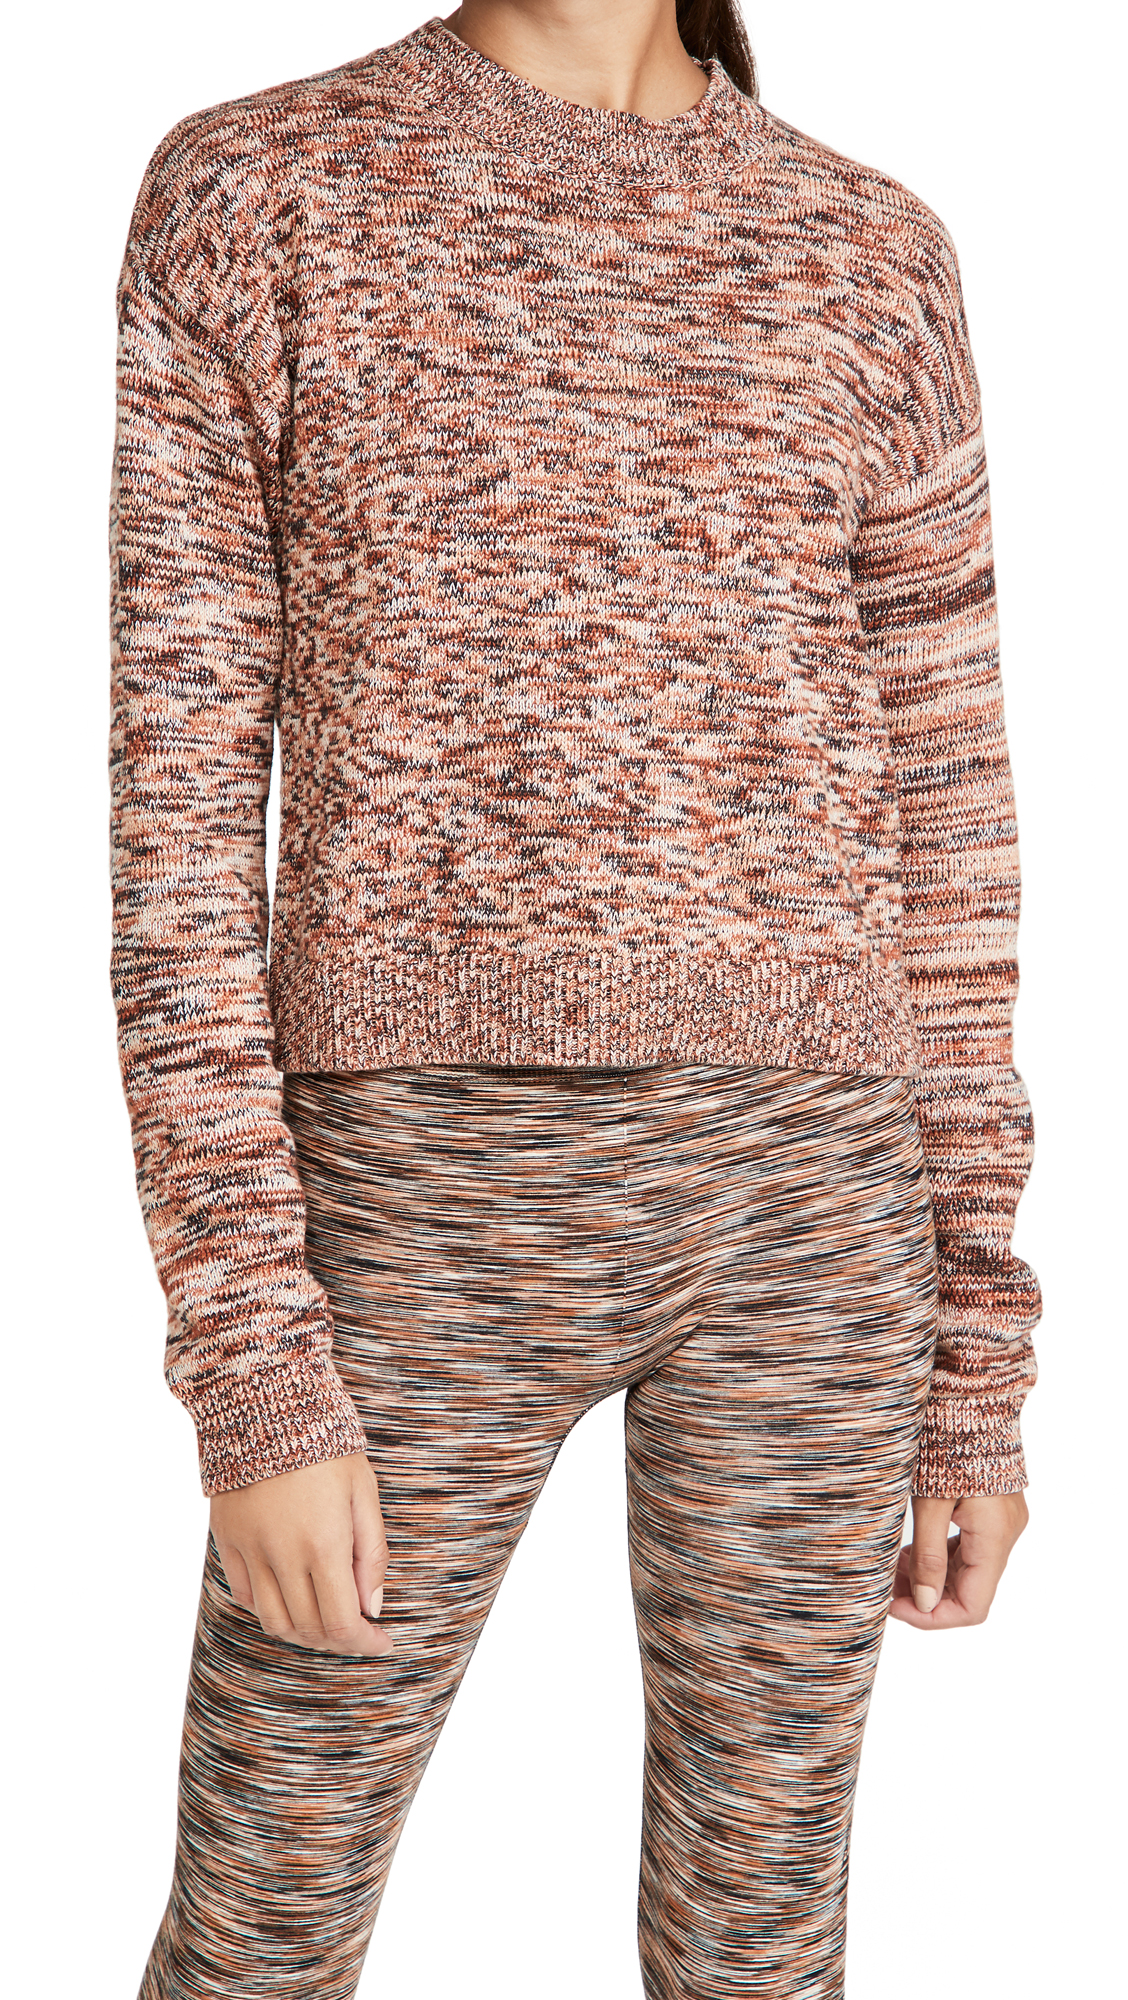 The Upside Arina Knit Sweater